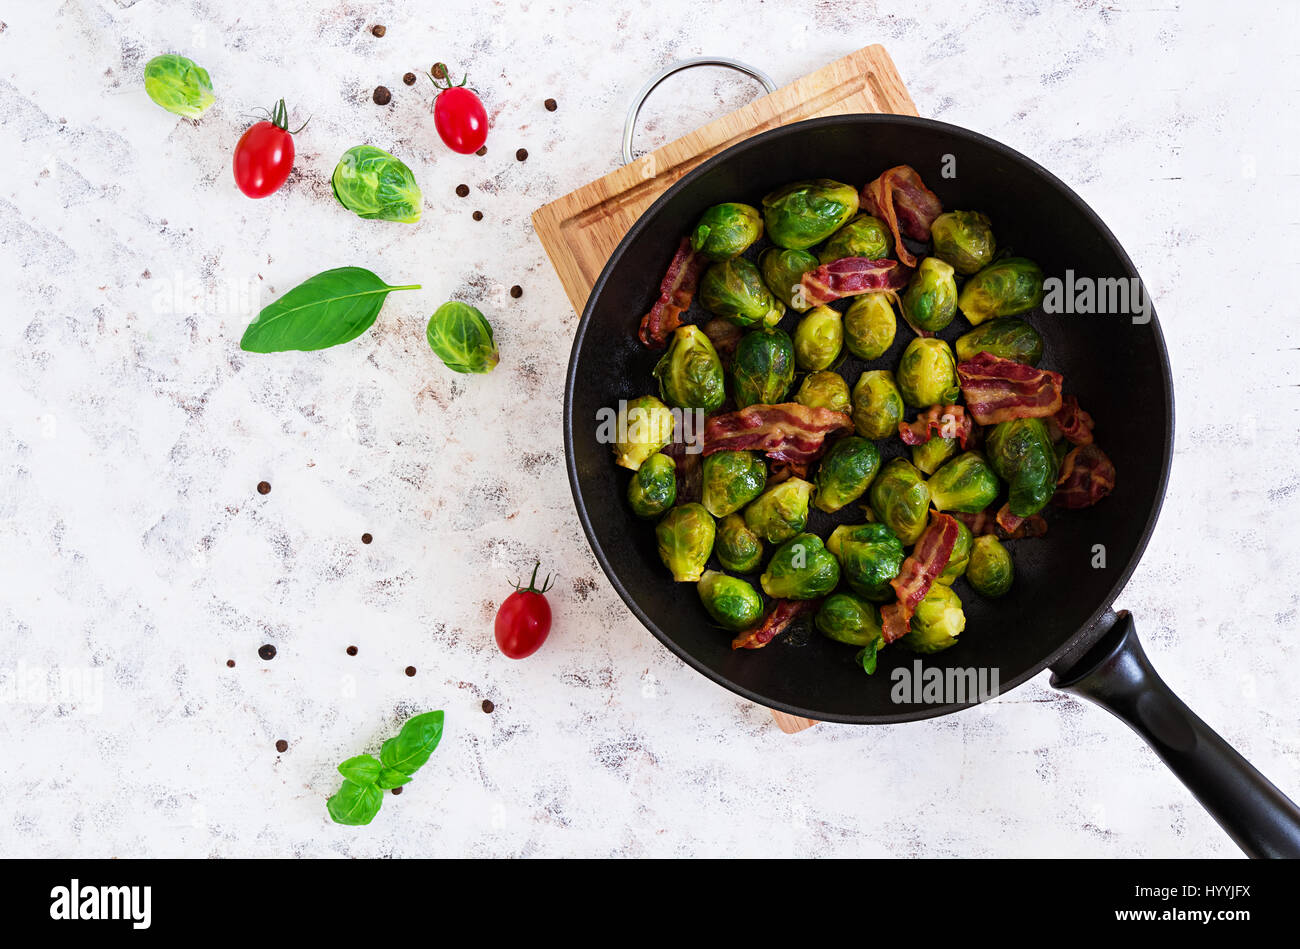 Roasted brussels sprouts with bacon on white background. Top view Stock Photo